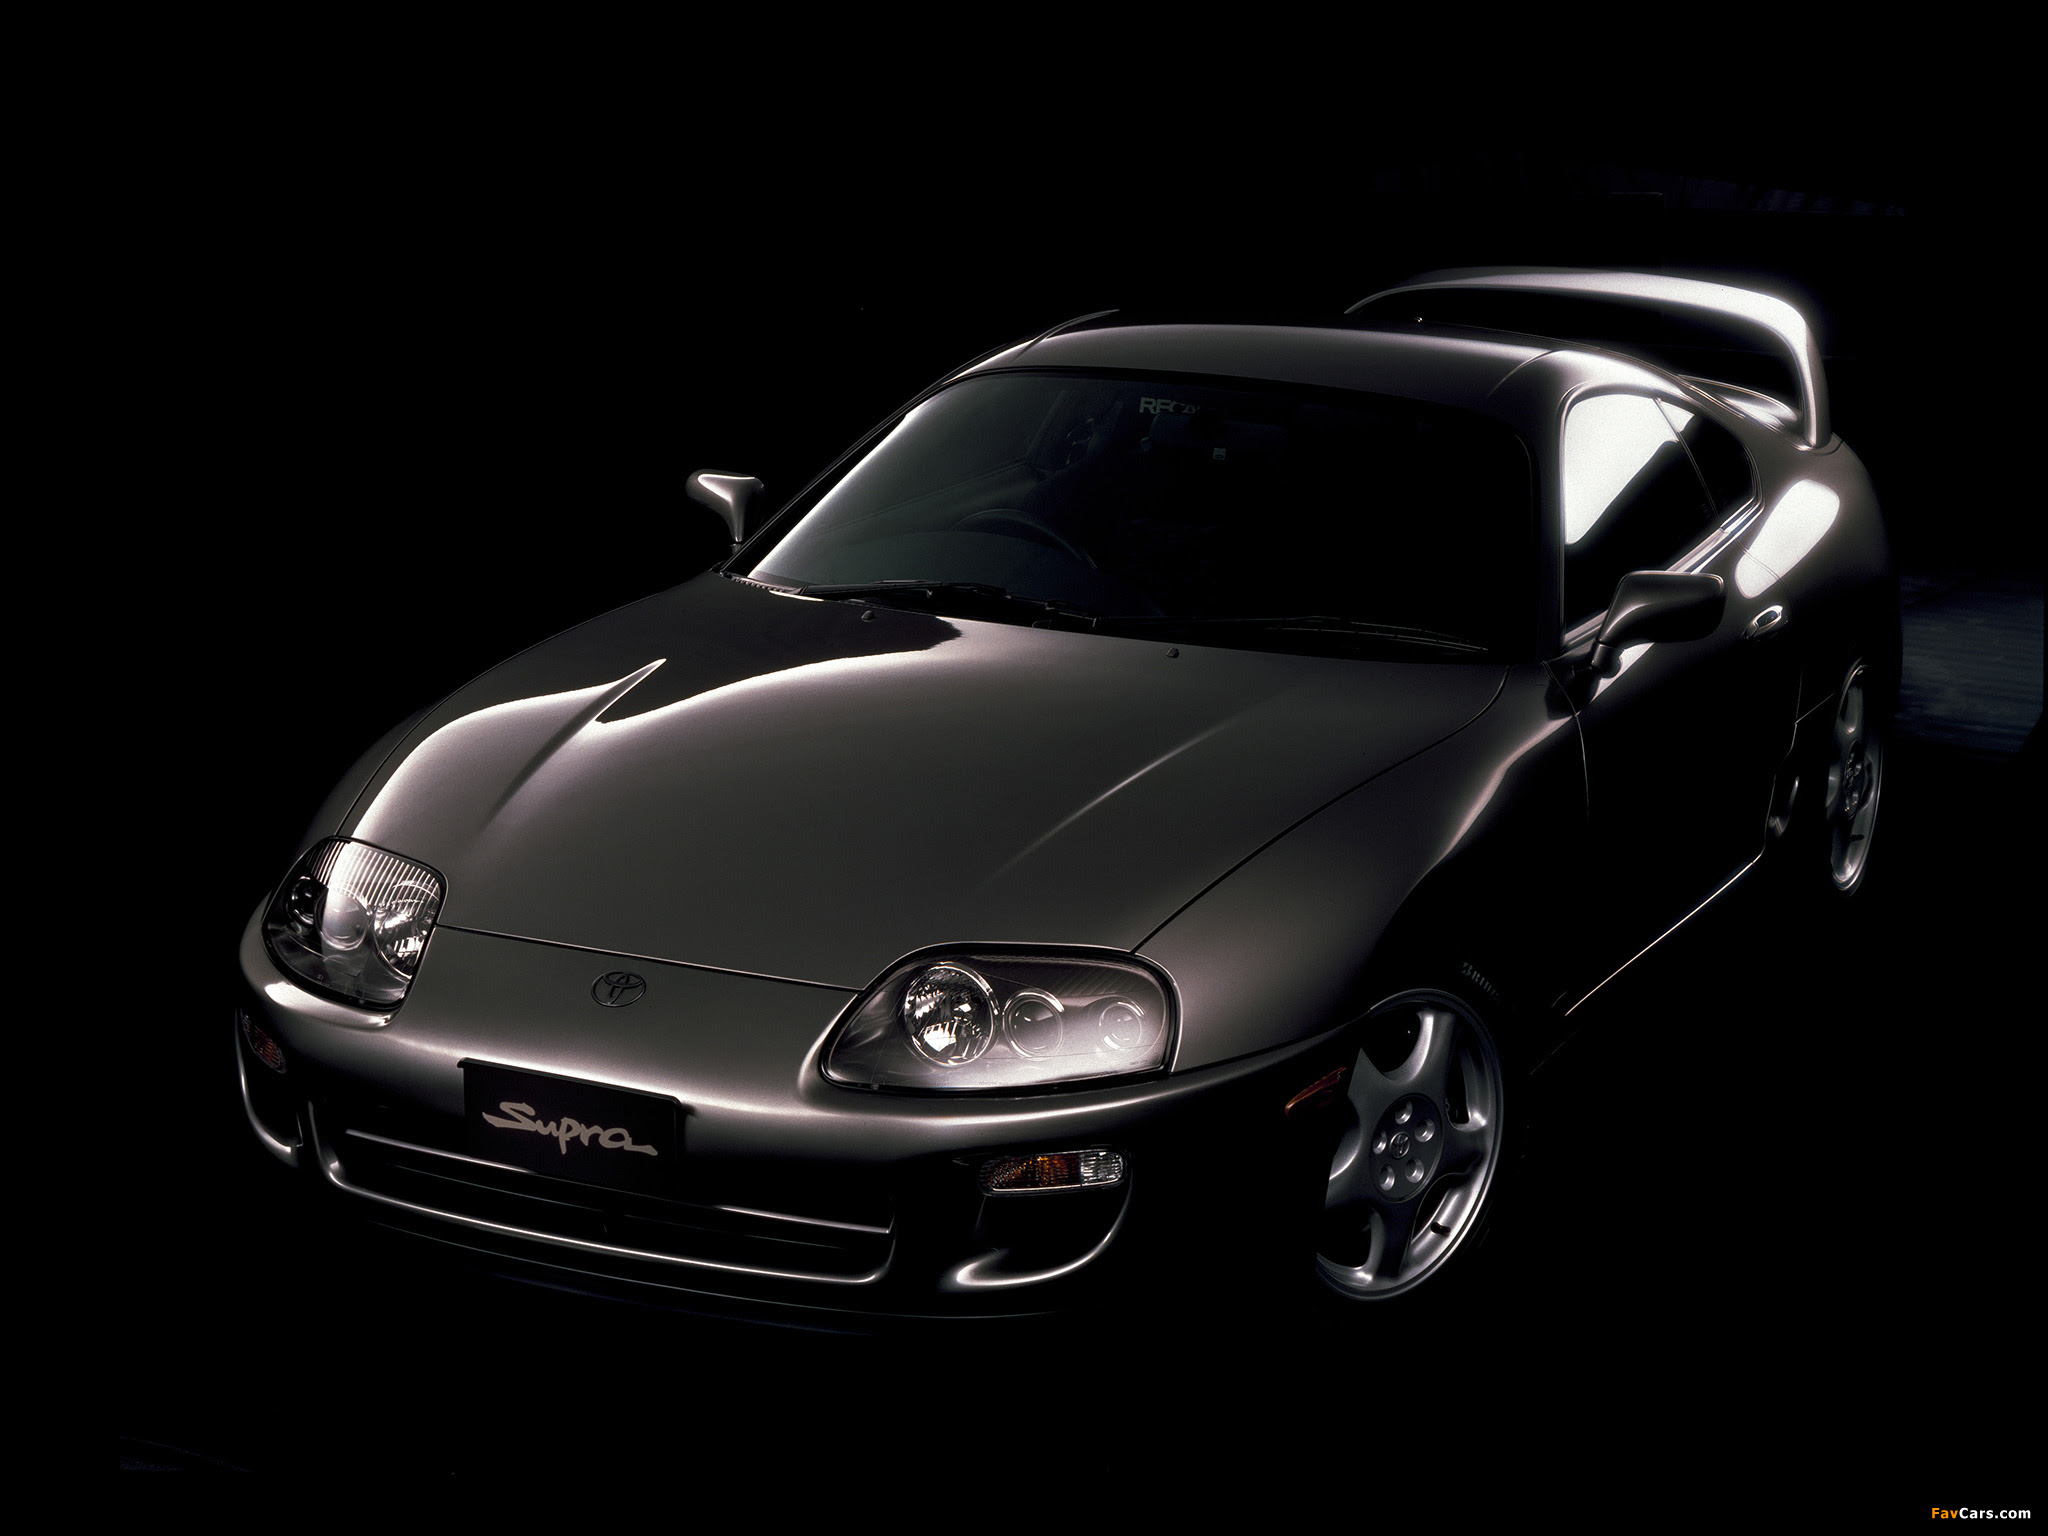 Toyota Supra 2002 Wallpapers of toyota supra rz